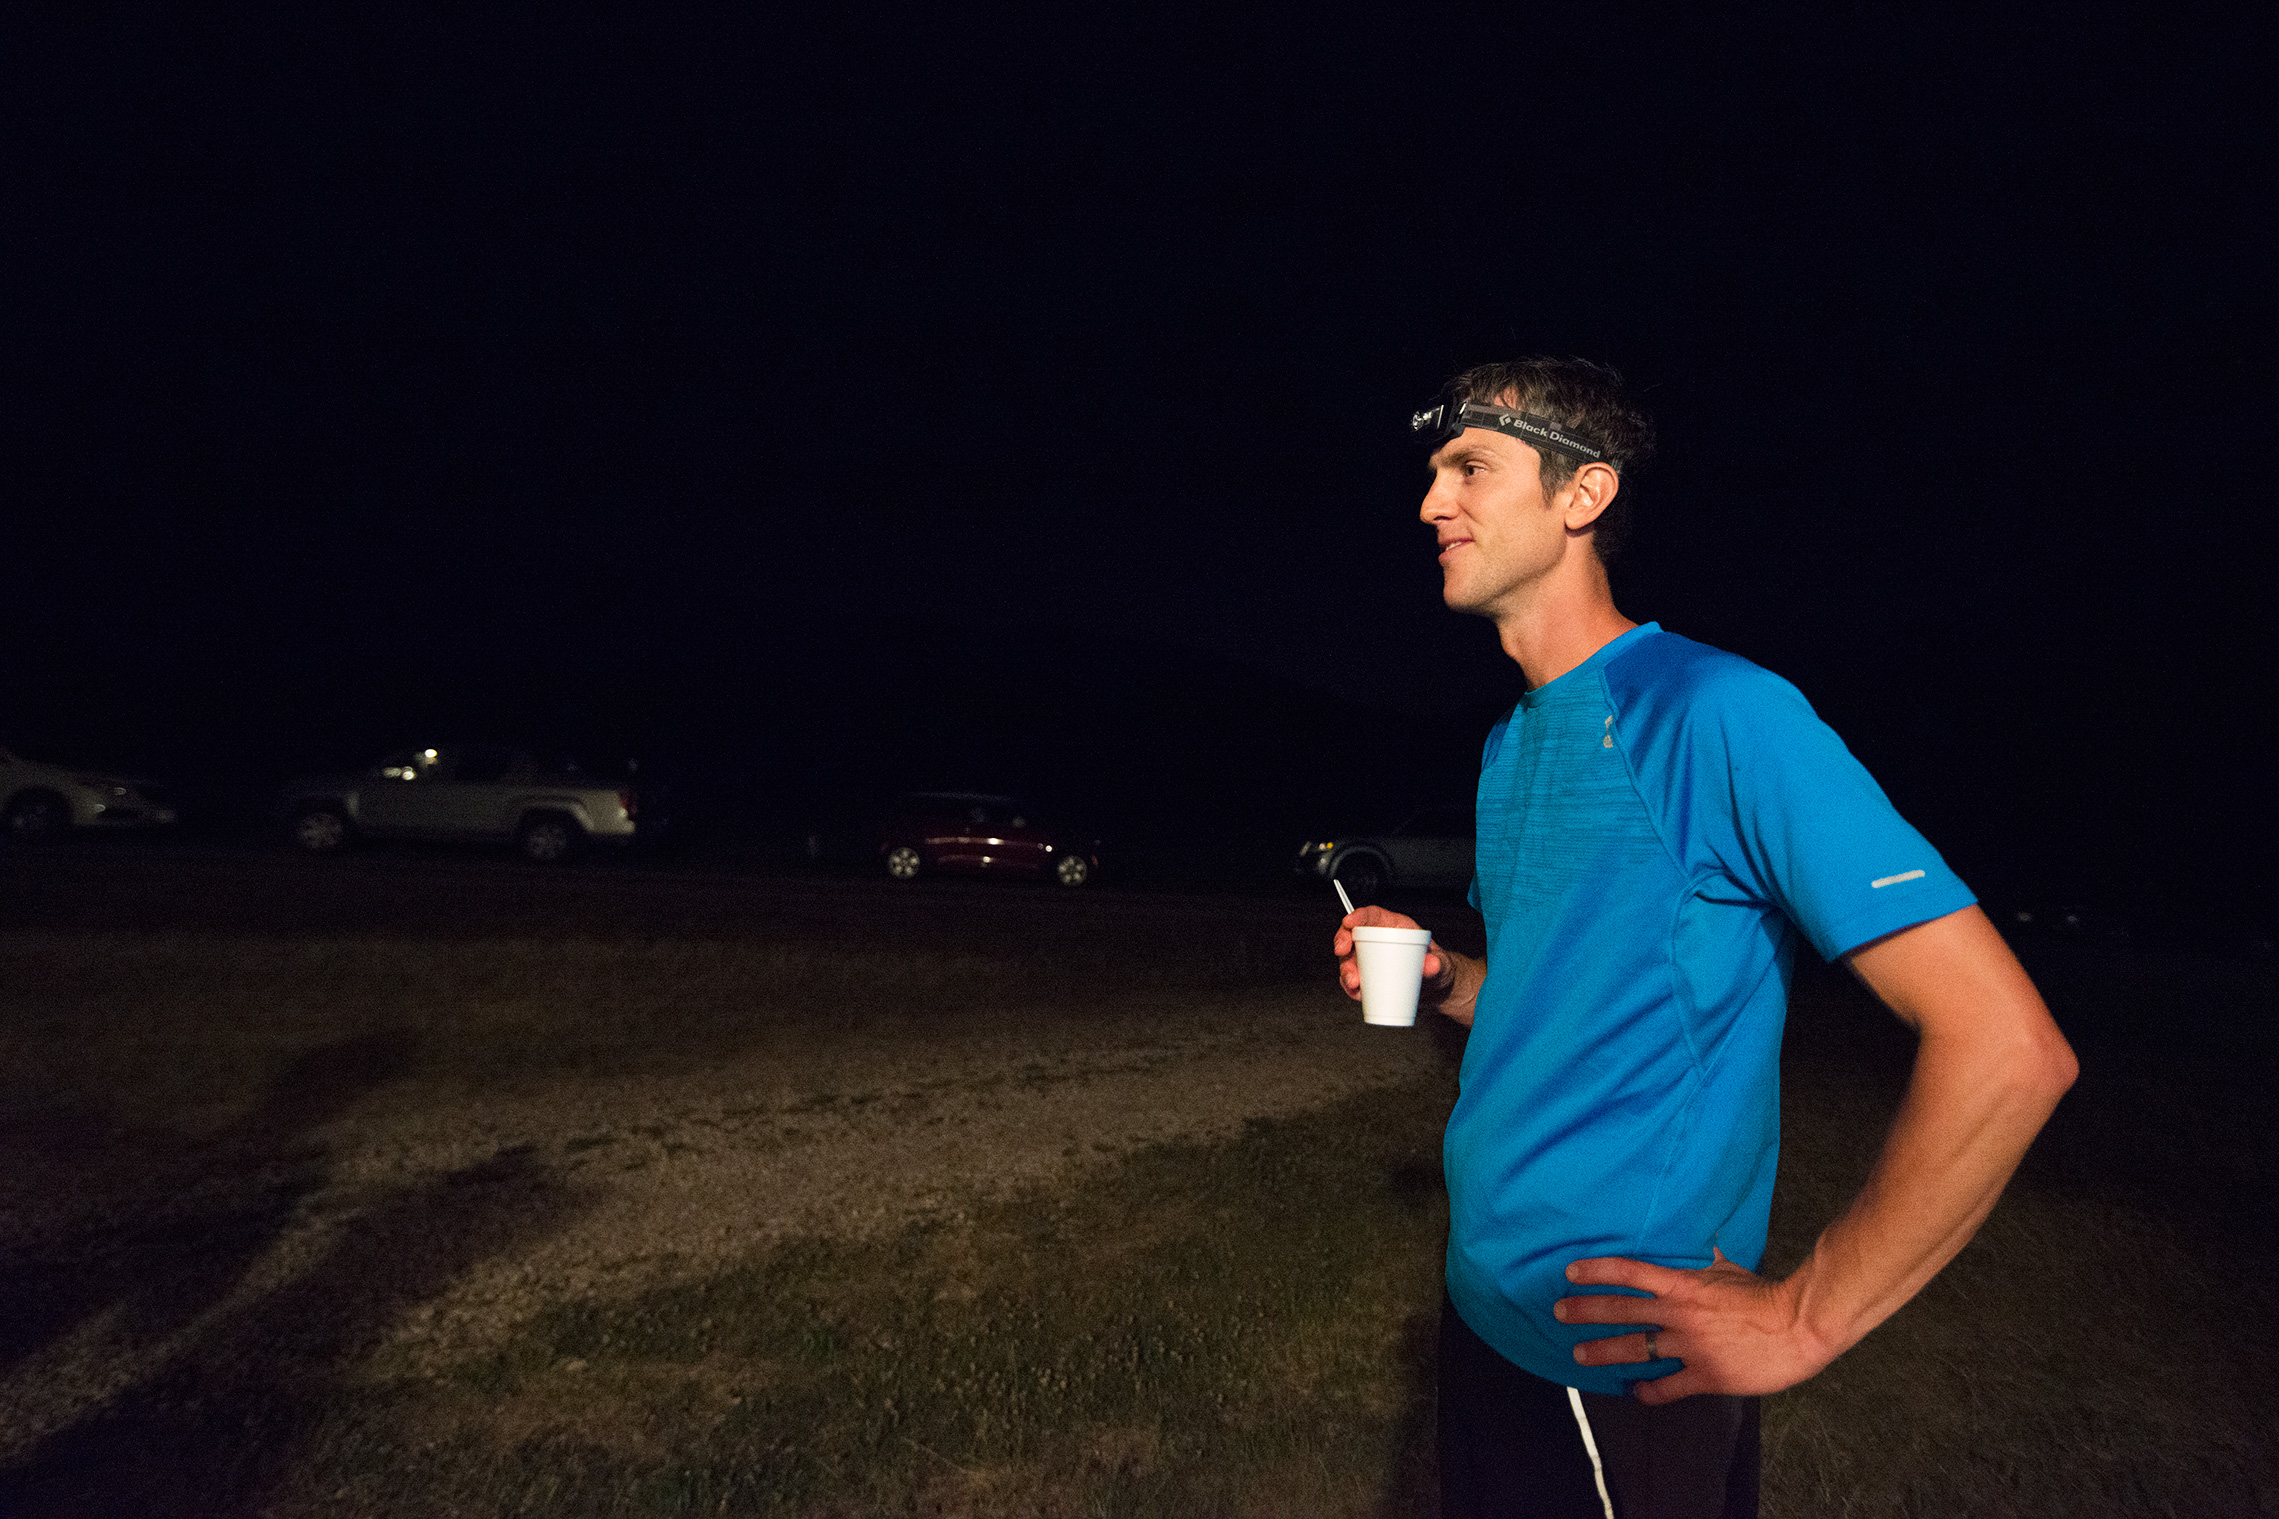 Ultra Marathon Runner at Aid Station